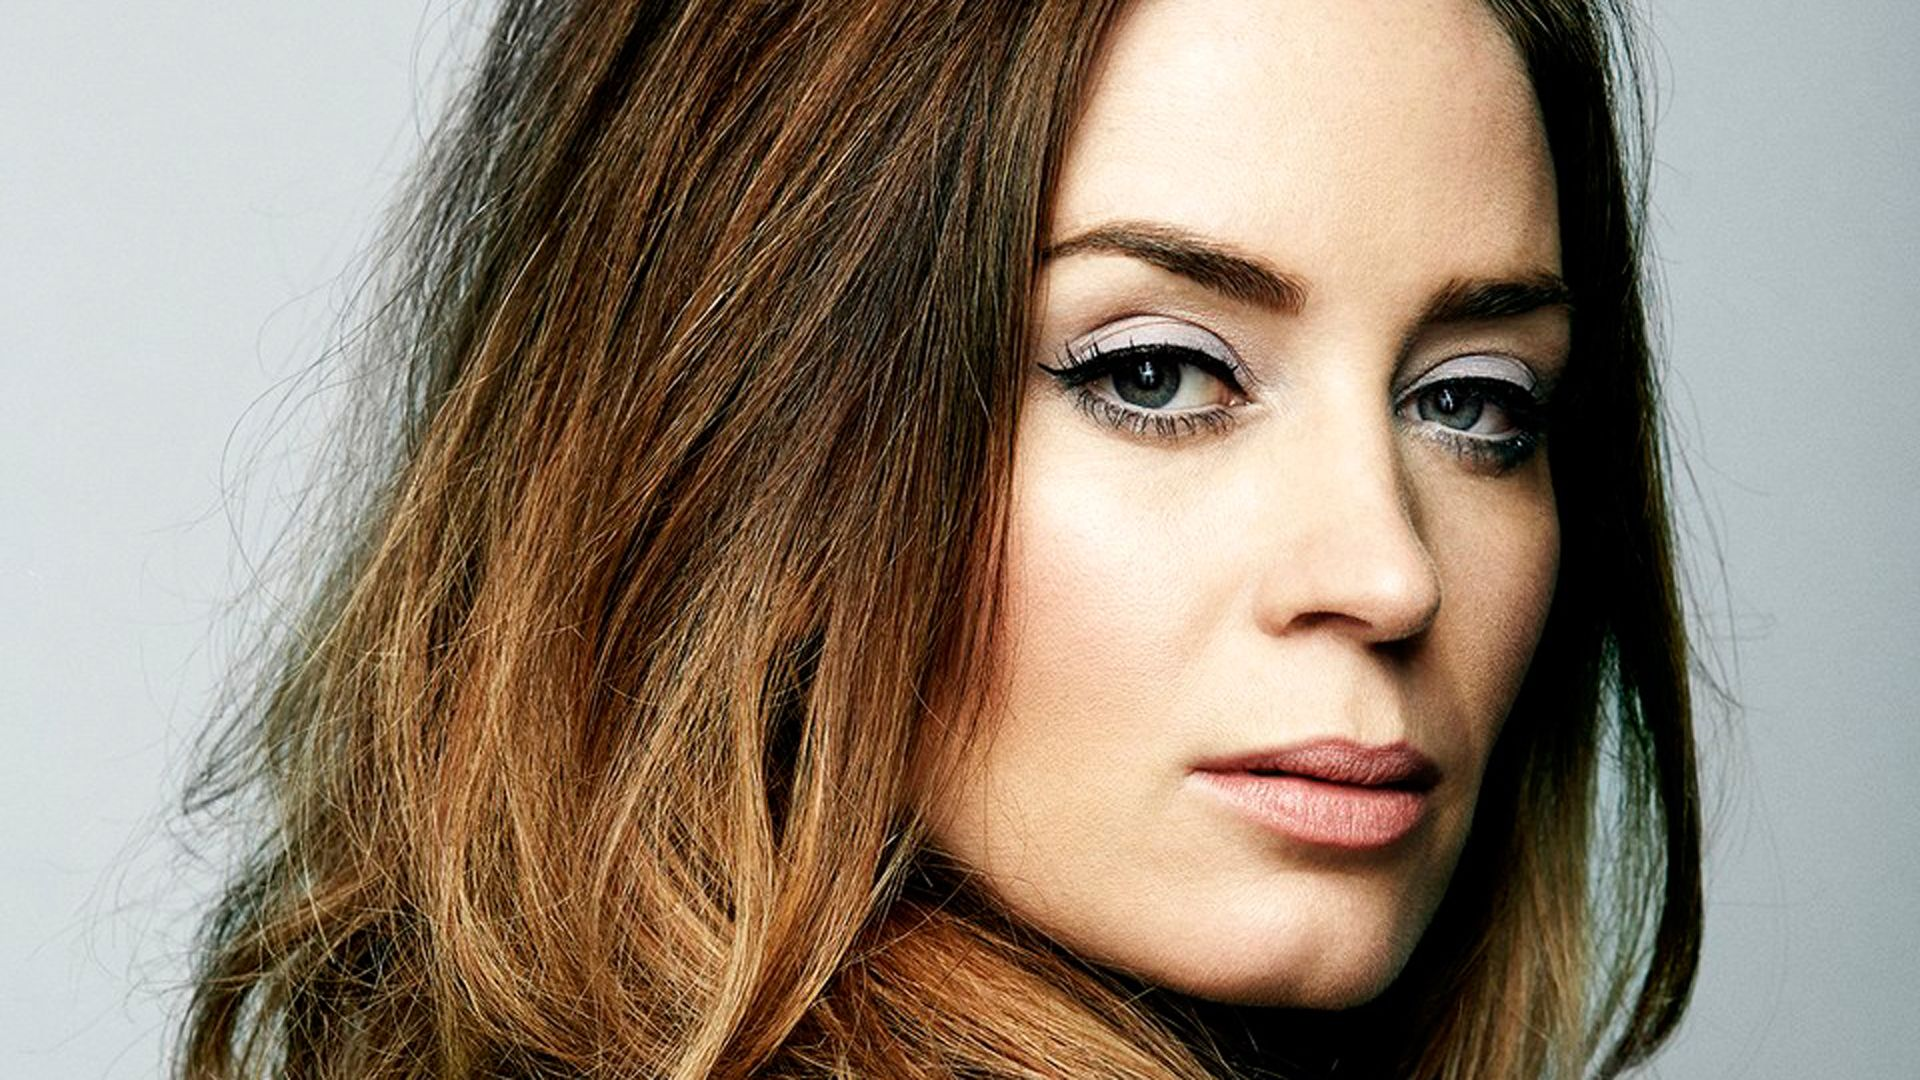 Emely Blunt She Was Great In The Movie The Girl On The Train Blunt Hair Emily Blunt Blunt